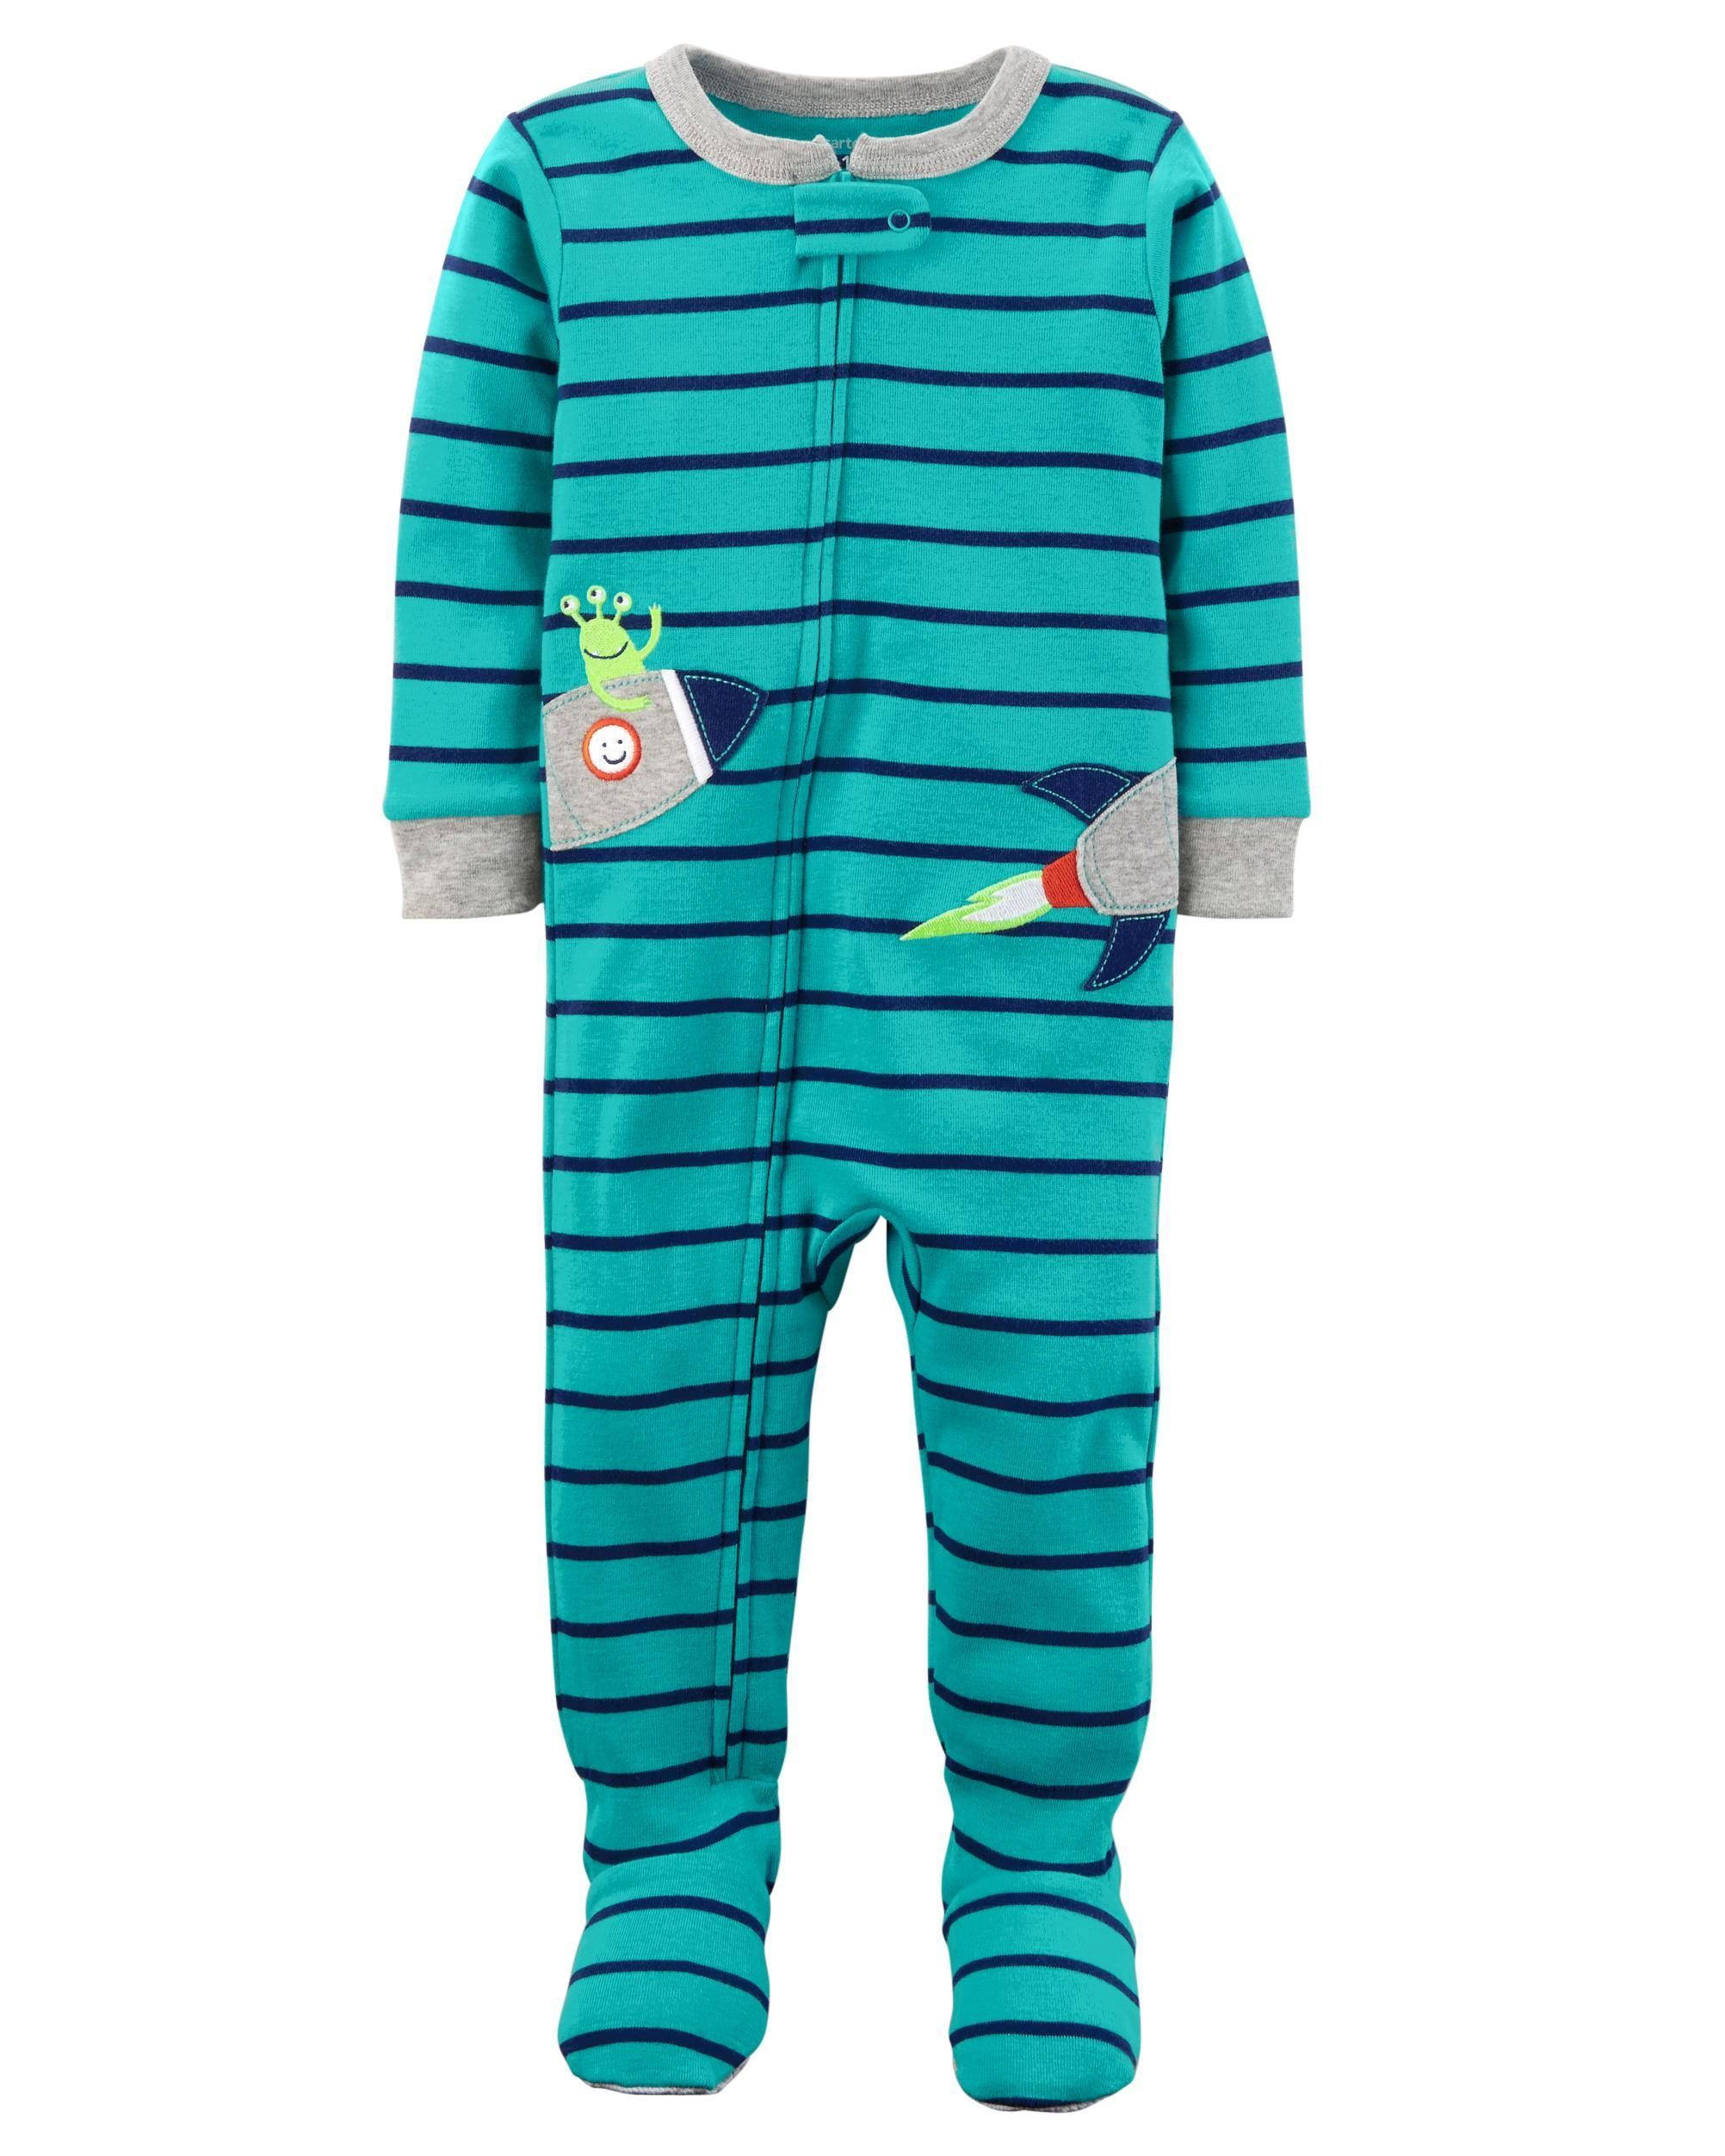 a71c555275fc 1-Piece Neon Rocket Snug Fit Cotton PJs